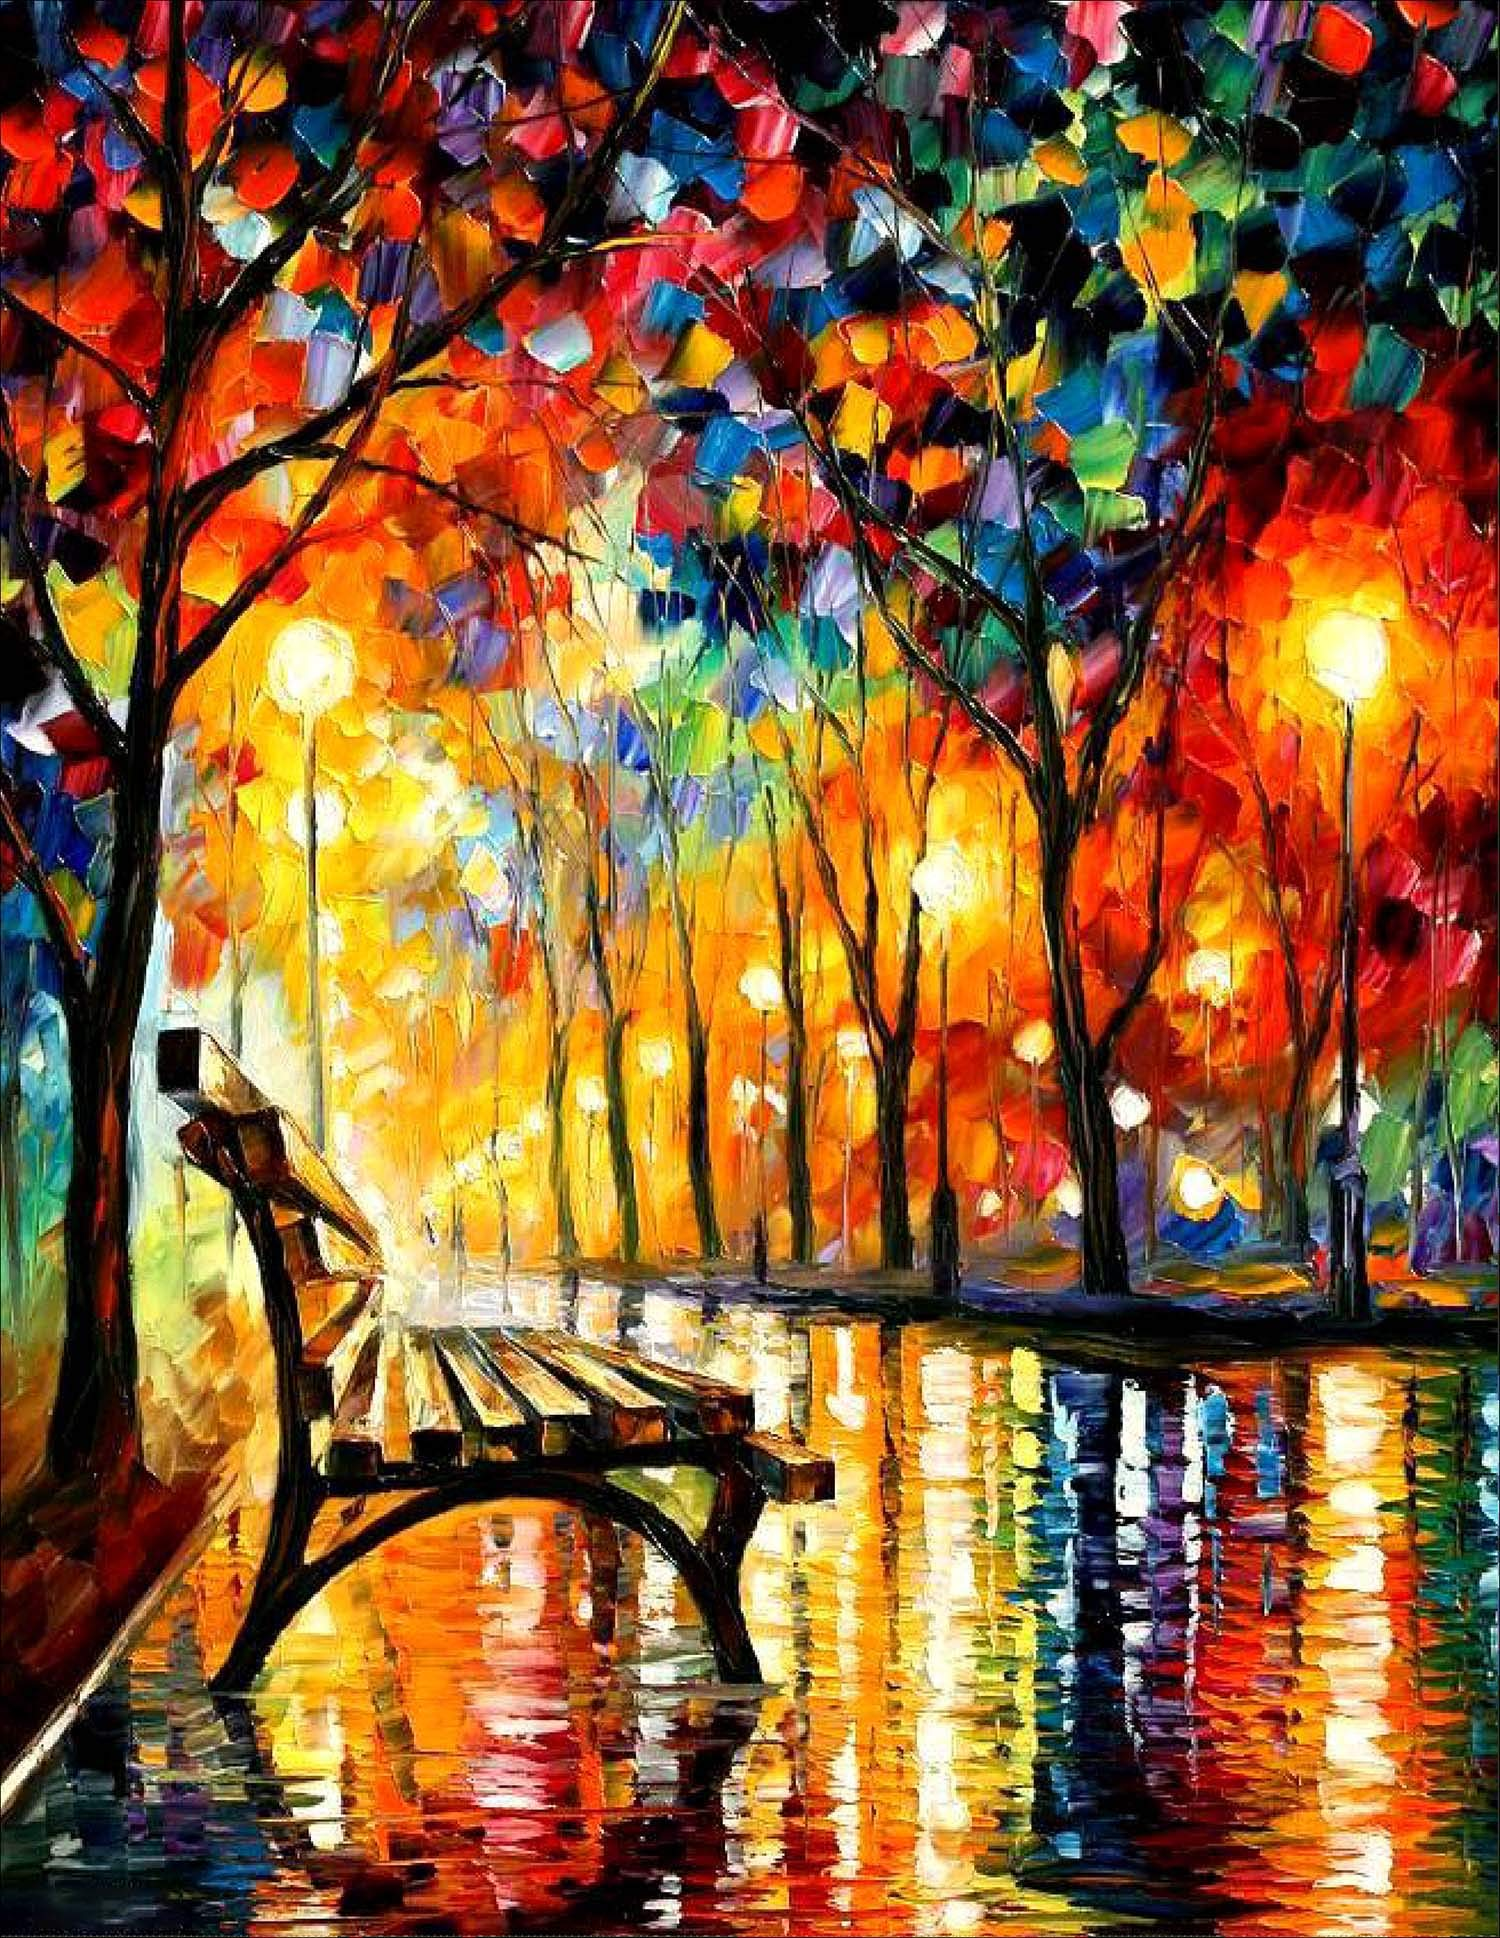 Rain Flower Tree Diymood Painting Paint with Diamonds Arts Wall Stickers for Living Room 30x40cm DIY 5D Diamond Painting by Number Kits for Adults 12x16inch